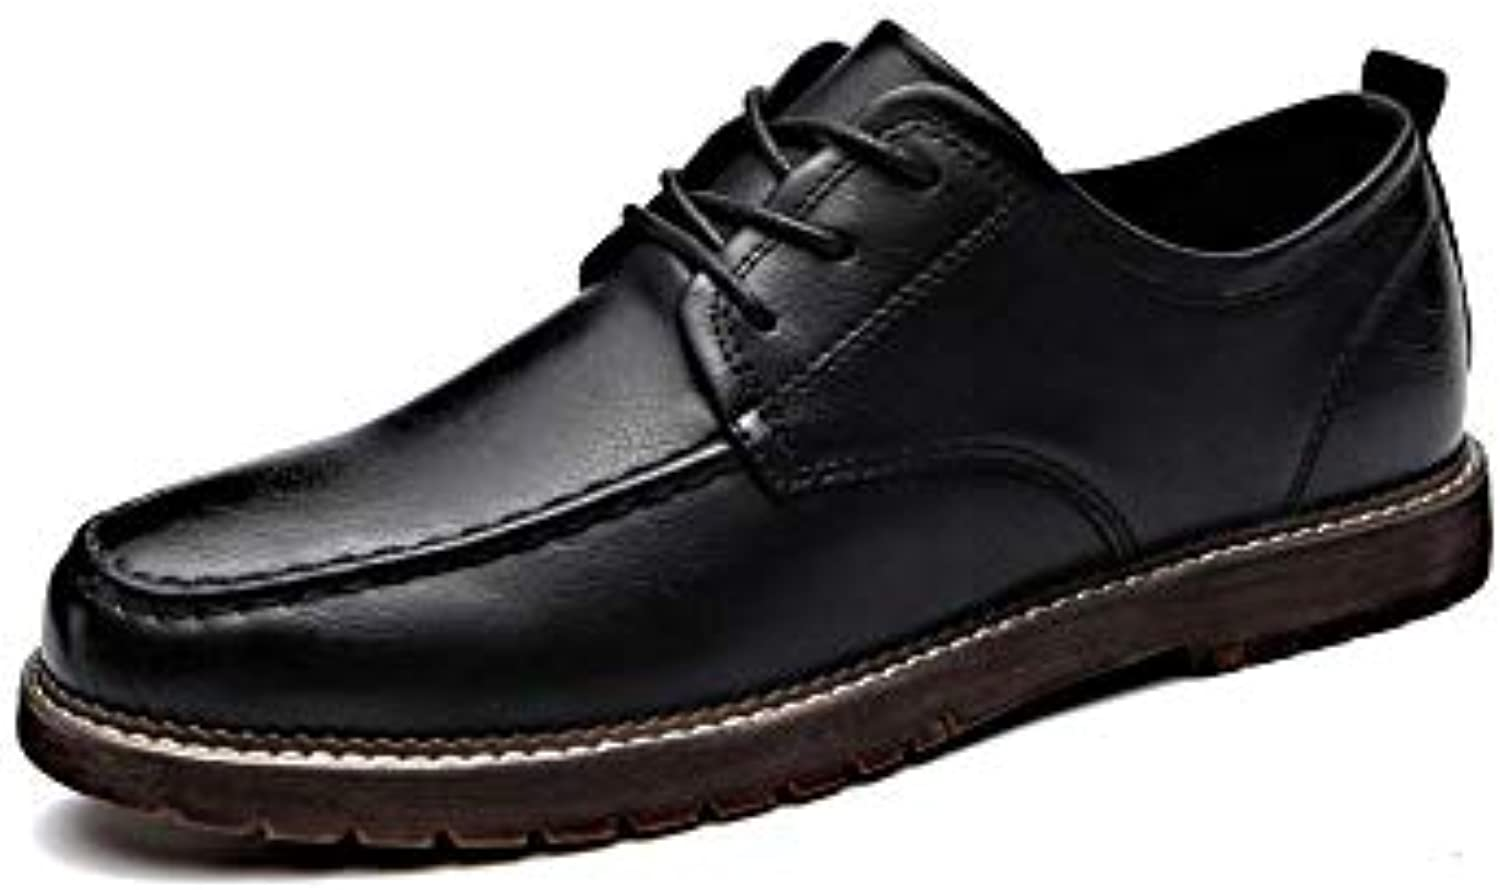 Gentlemen/Ladies LYZGF Men's Youth Spring Autumn Business Casual design Fashion Shoes Crazy price Lush design Casual Highly appreciated and widely trusted in and out VB17839 4bfdb5